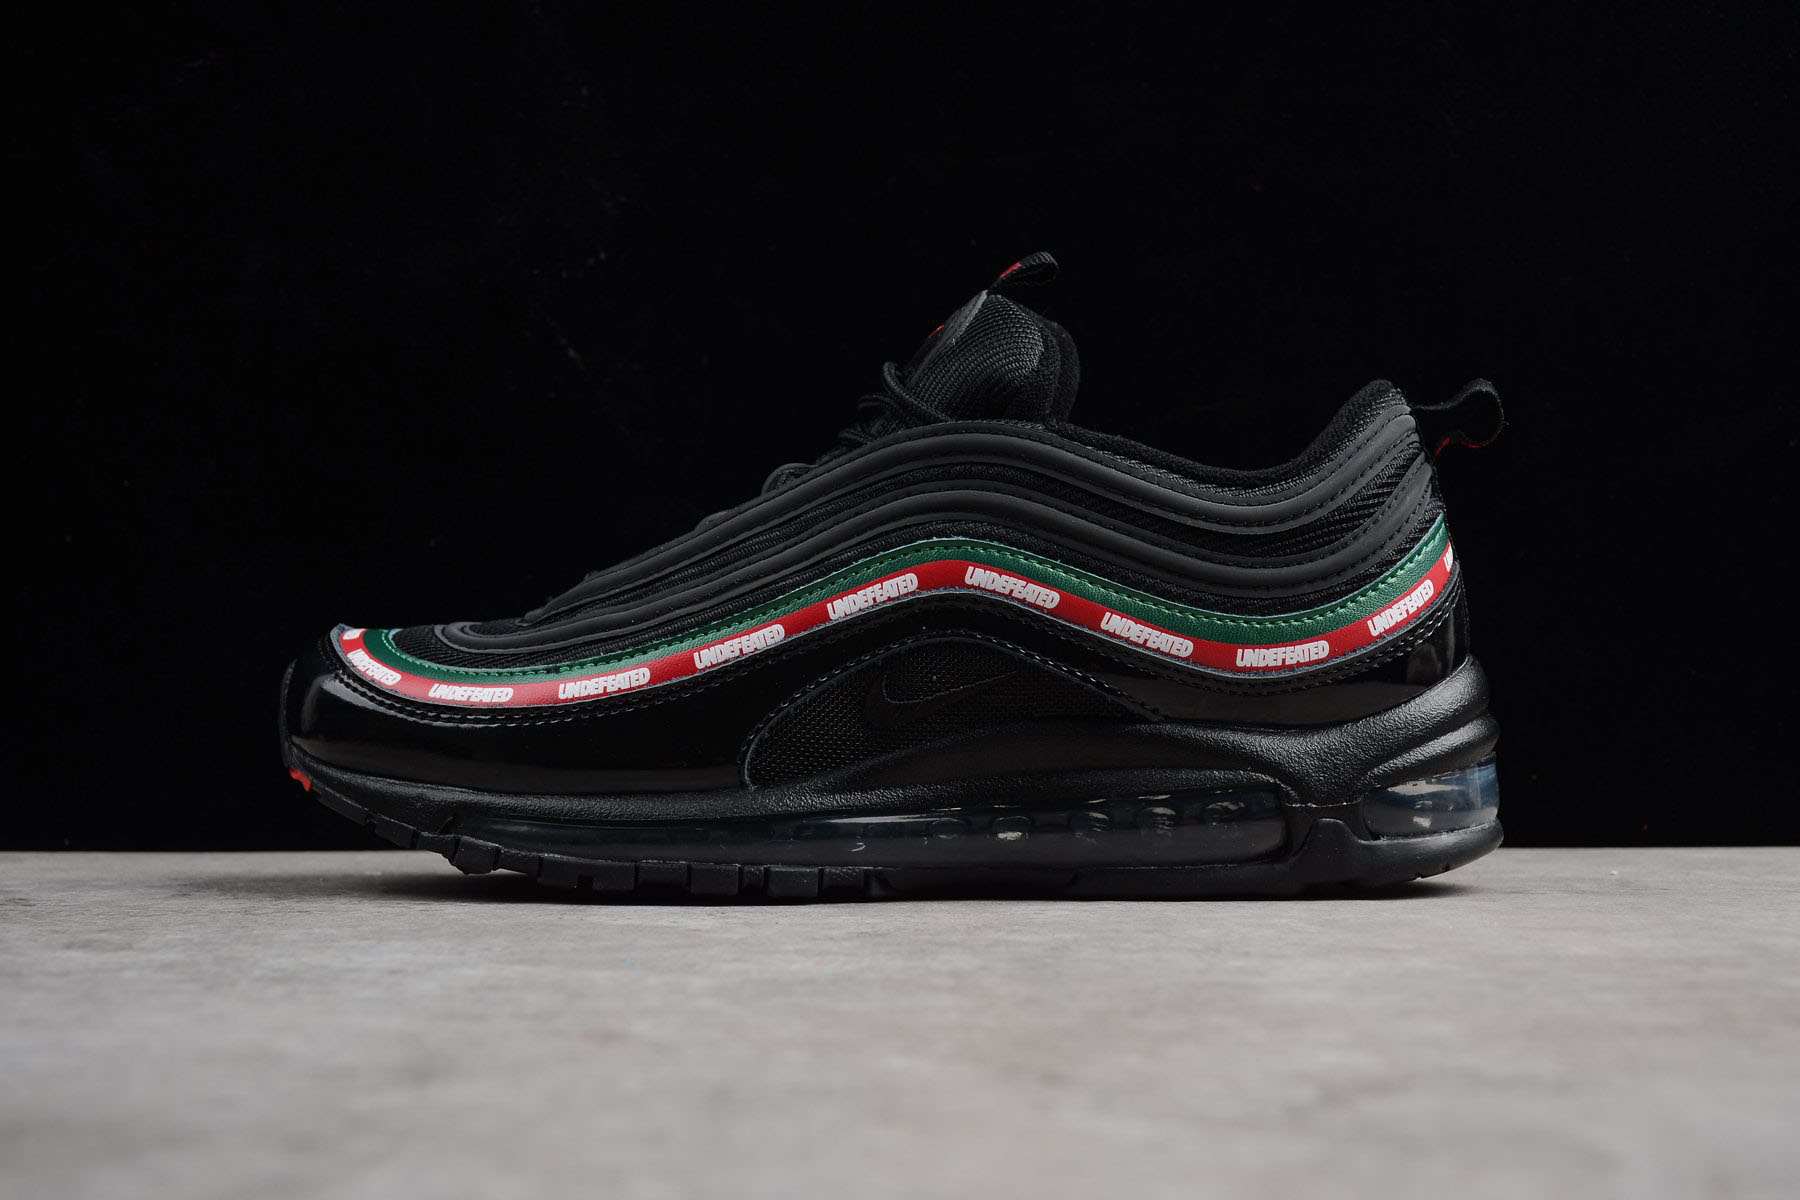 Undefeated x Nike Air Max 97 OG Black AJ1986-001 Men's and Women's Size